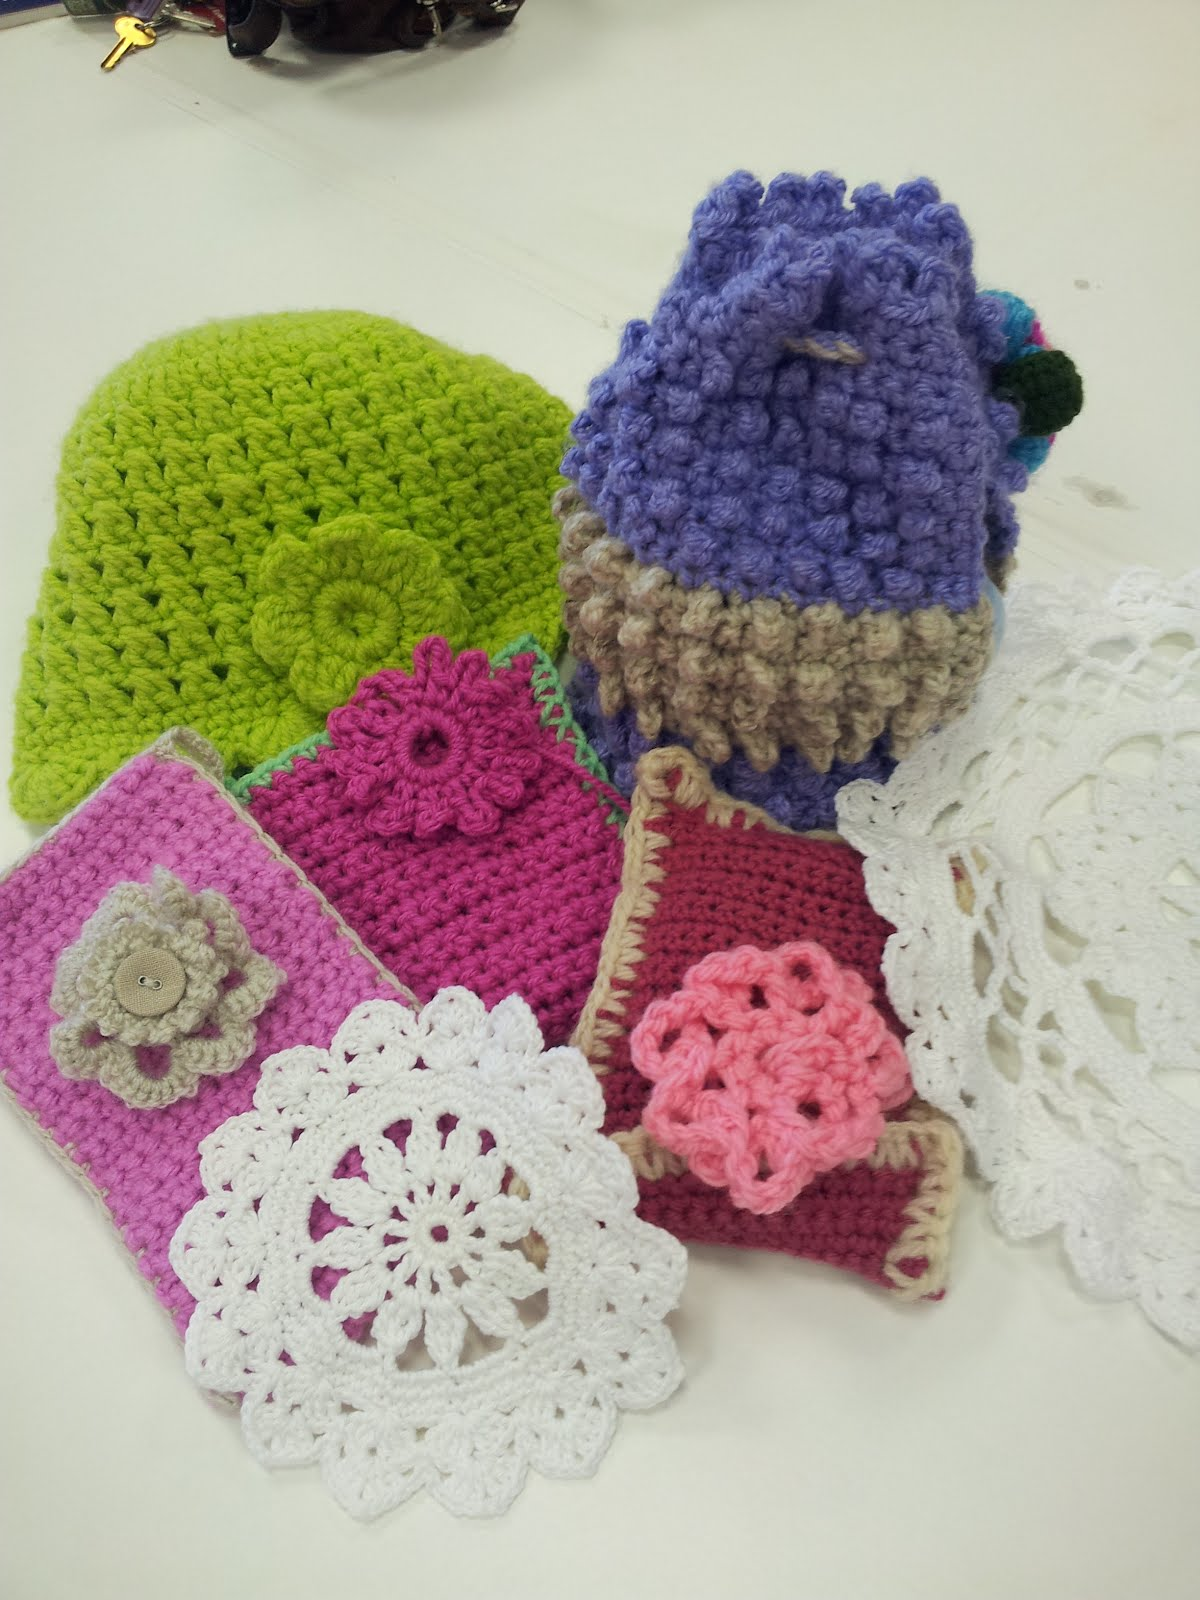 Crochet Classes with Anne Quinn